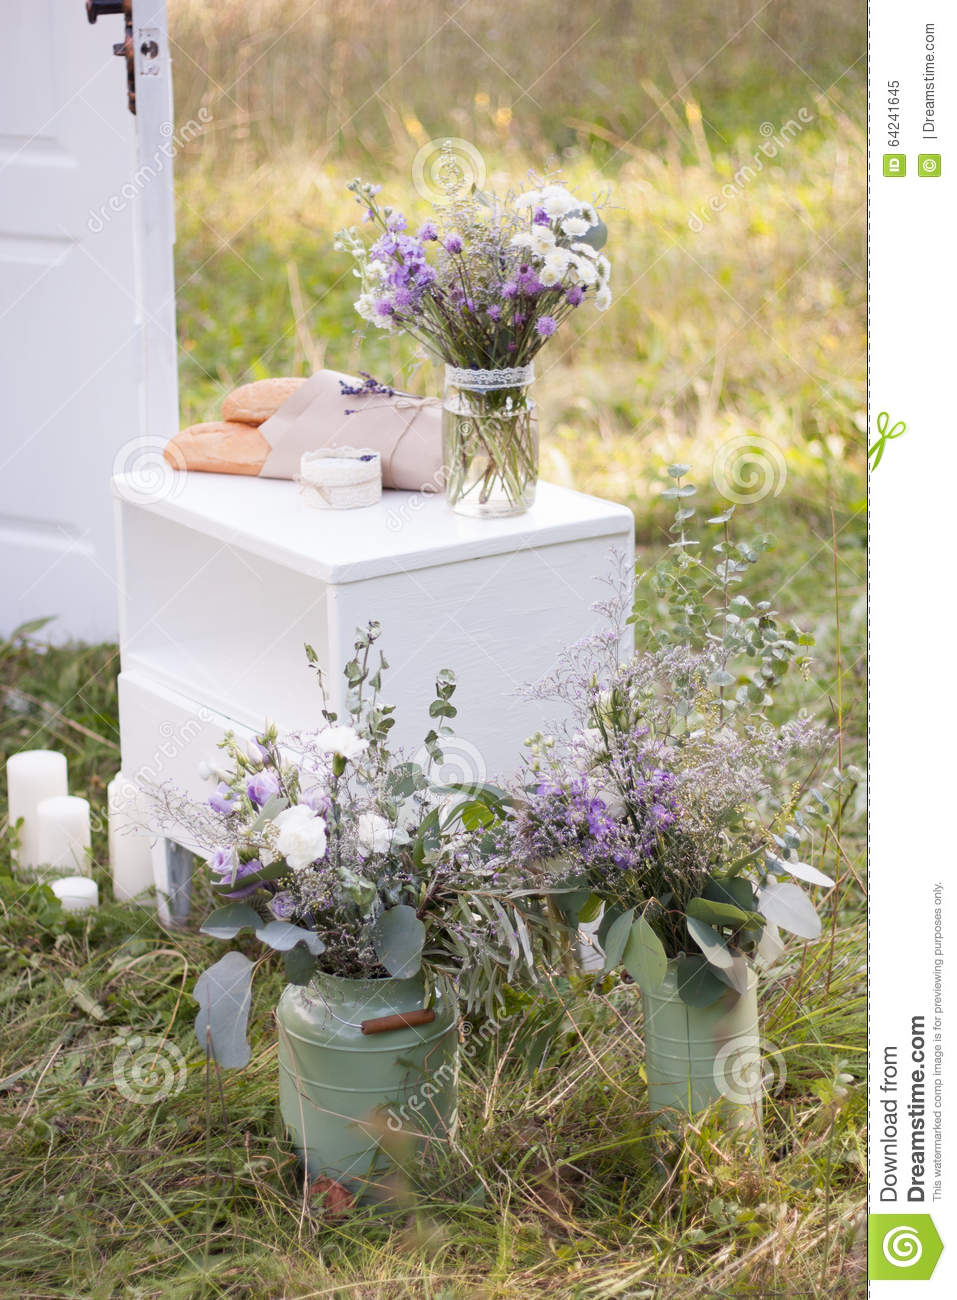 Provence Decoration Wedding Decorations In The Style Of Provence Stock Image Image